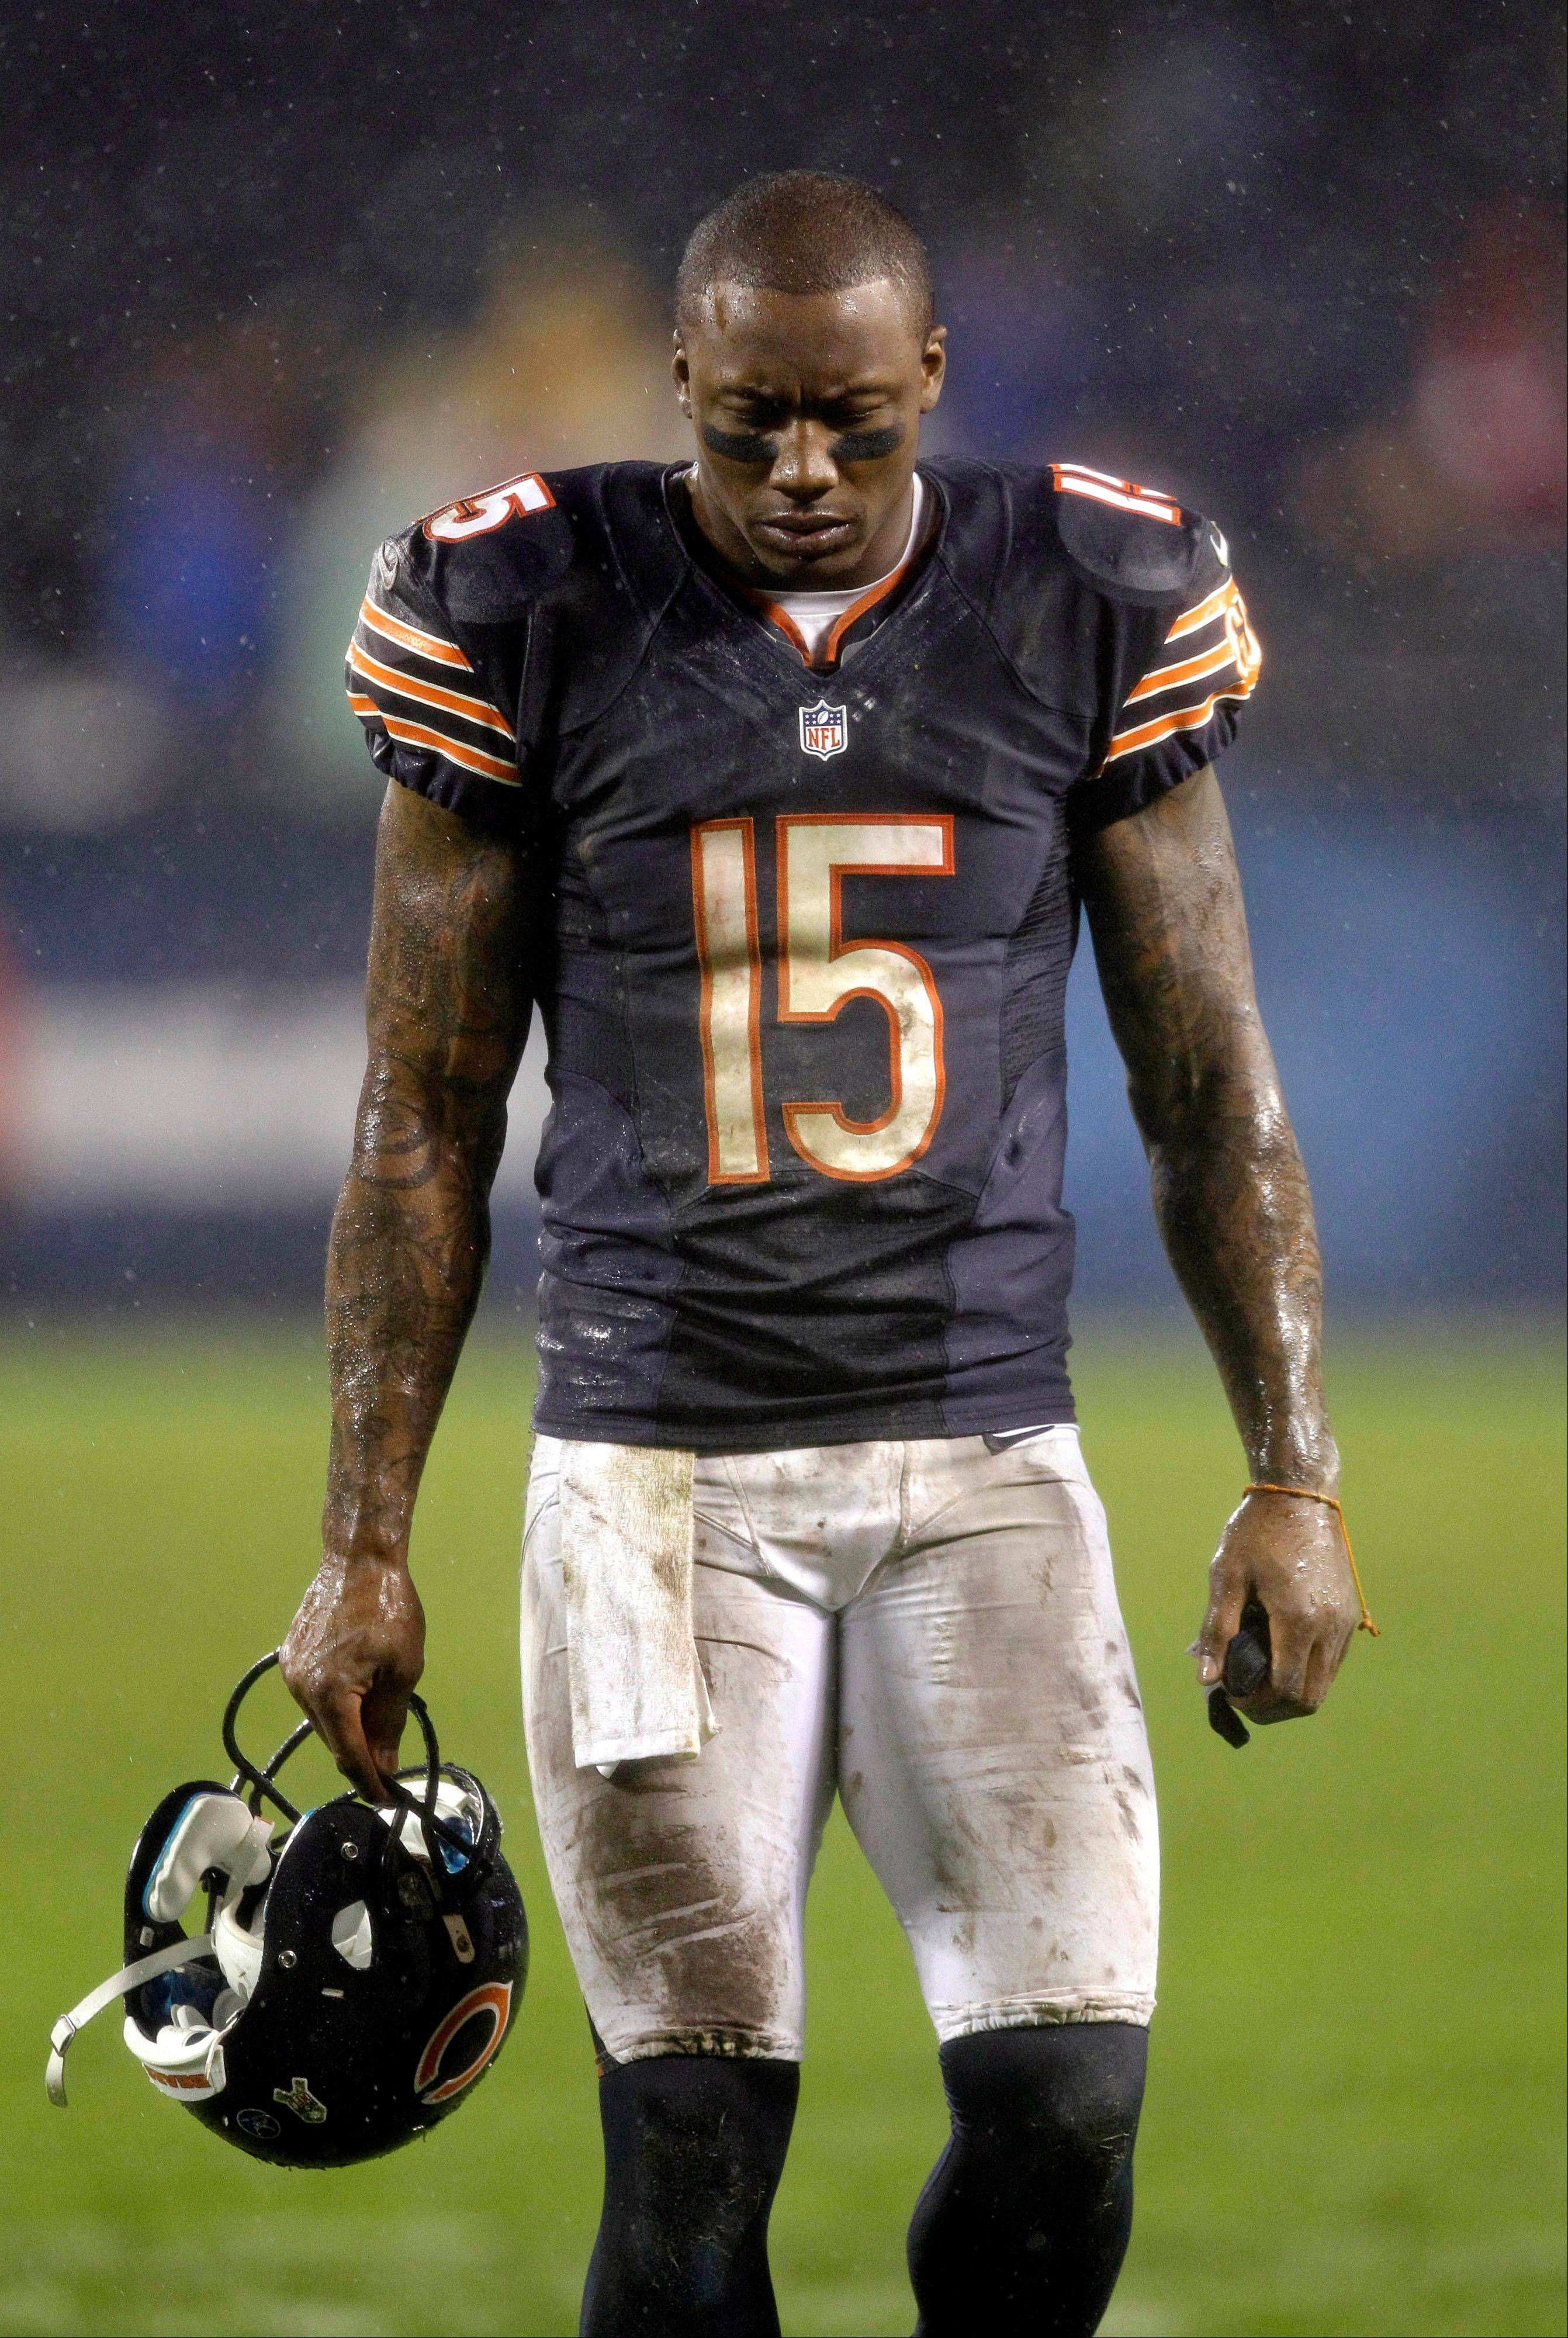 Bears wide receiver Brandon Marshall walks off the field after the Bears� 13-6 loss to the Houston Texans on Sunday night.